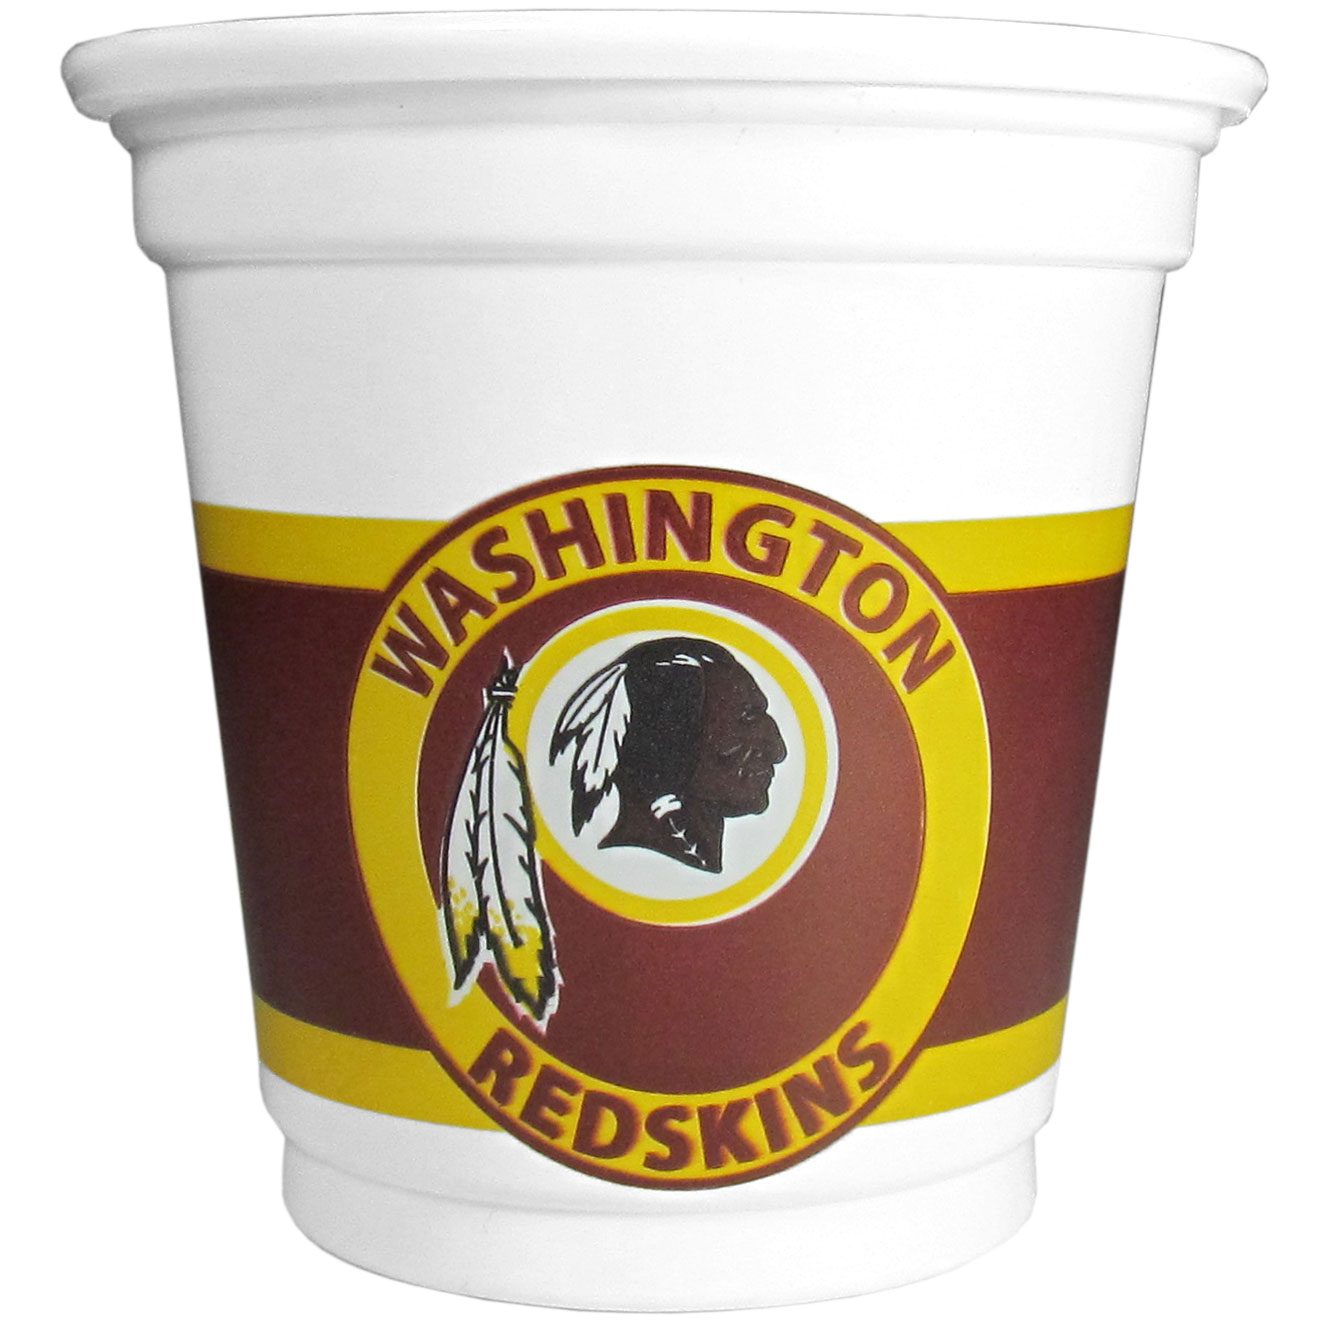 Washington Redskins 18 Game Day Mini Cups - No better way to show your off your team pride on game day than these Washington Redskins game day mini cups. The 3 ounce disposable glasses are the perfect addition to your game day party or tailgating BBQ. The cups come in a sleeve of 18 to make sure everyone is sporting true team spirit!